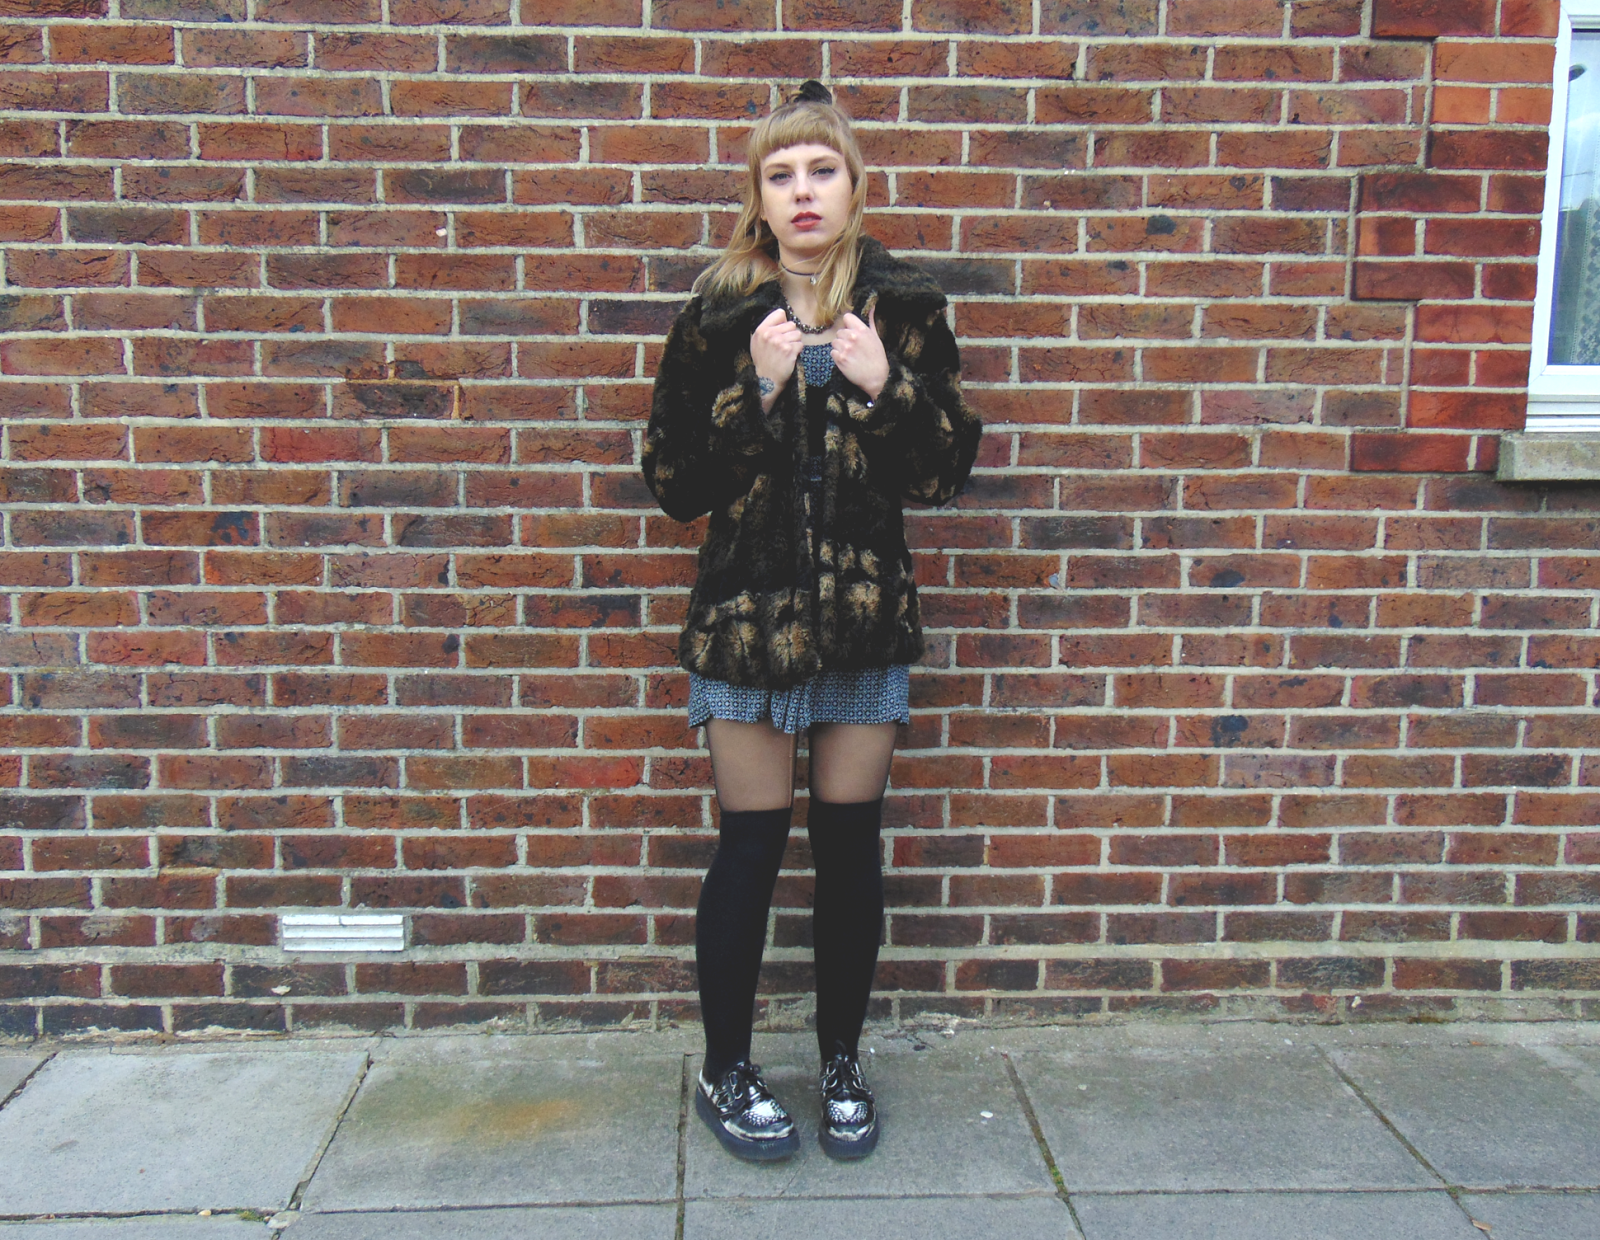 90's grunge inspired outfit, 90's grunge style fashion, knee high socks over tights, underground creepers, faux fur coat, babydoll dress, alternative fashion, alternative style